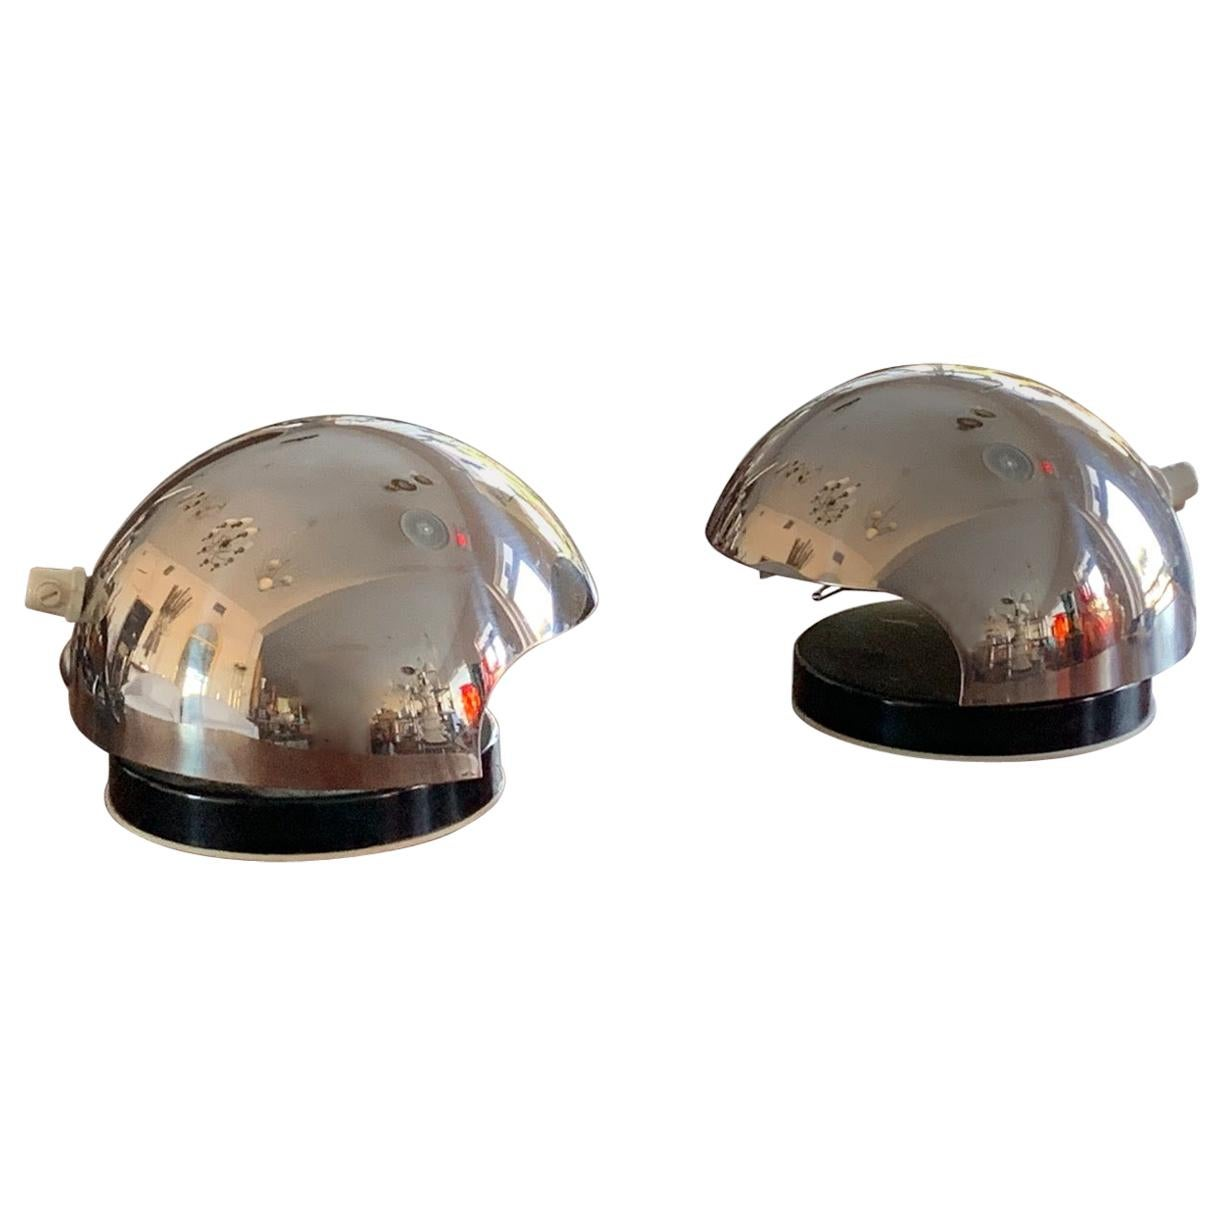 Pair of Bedside Lamps by Reggiani